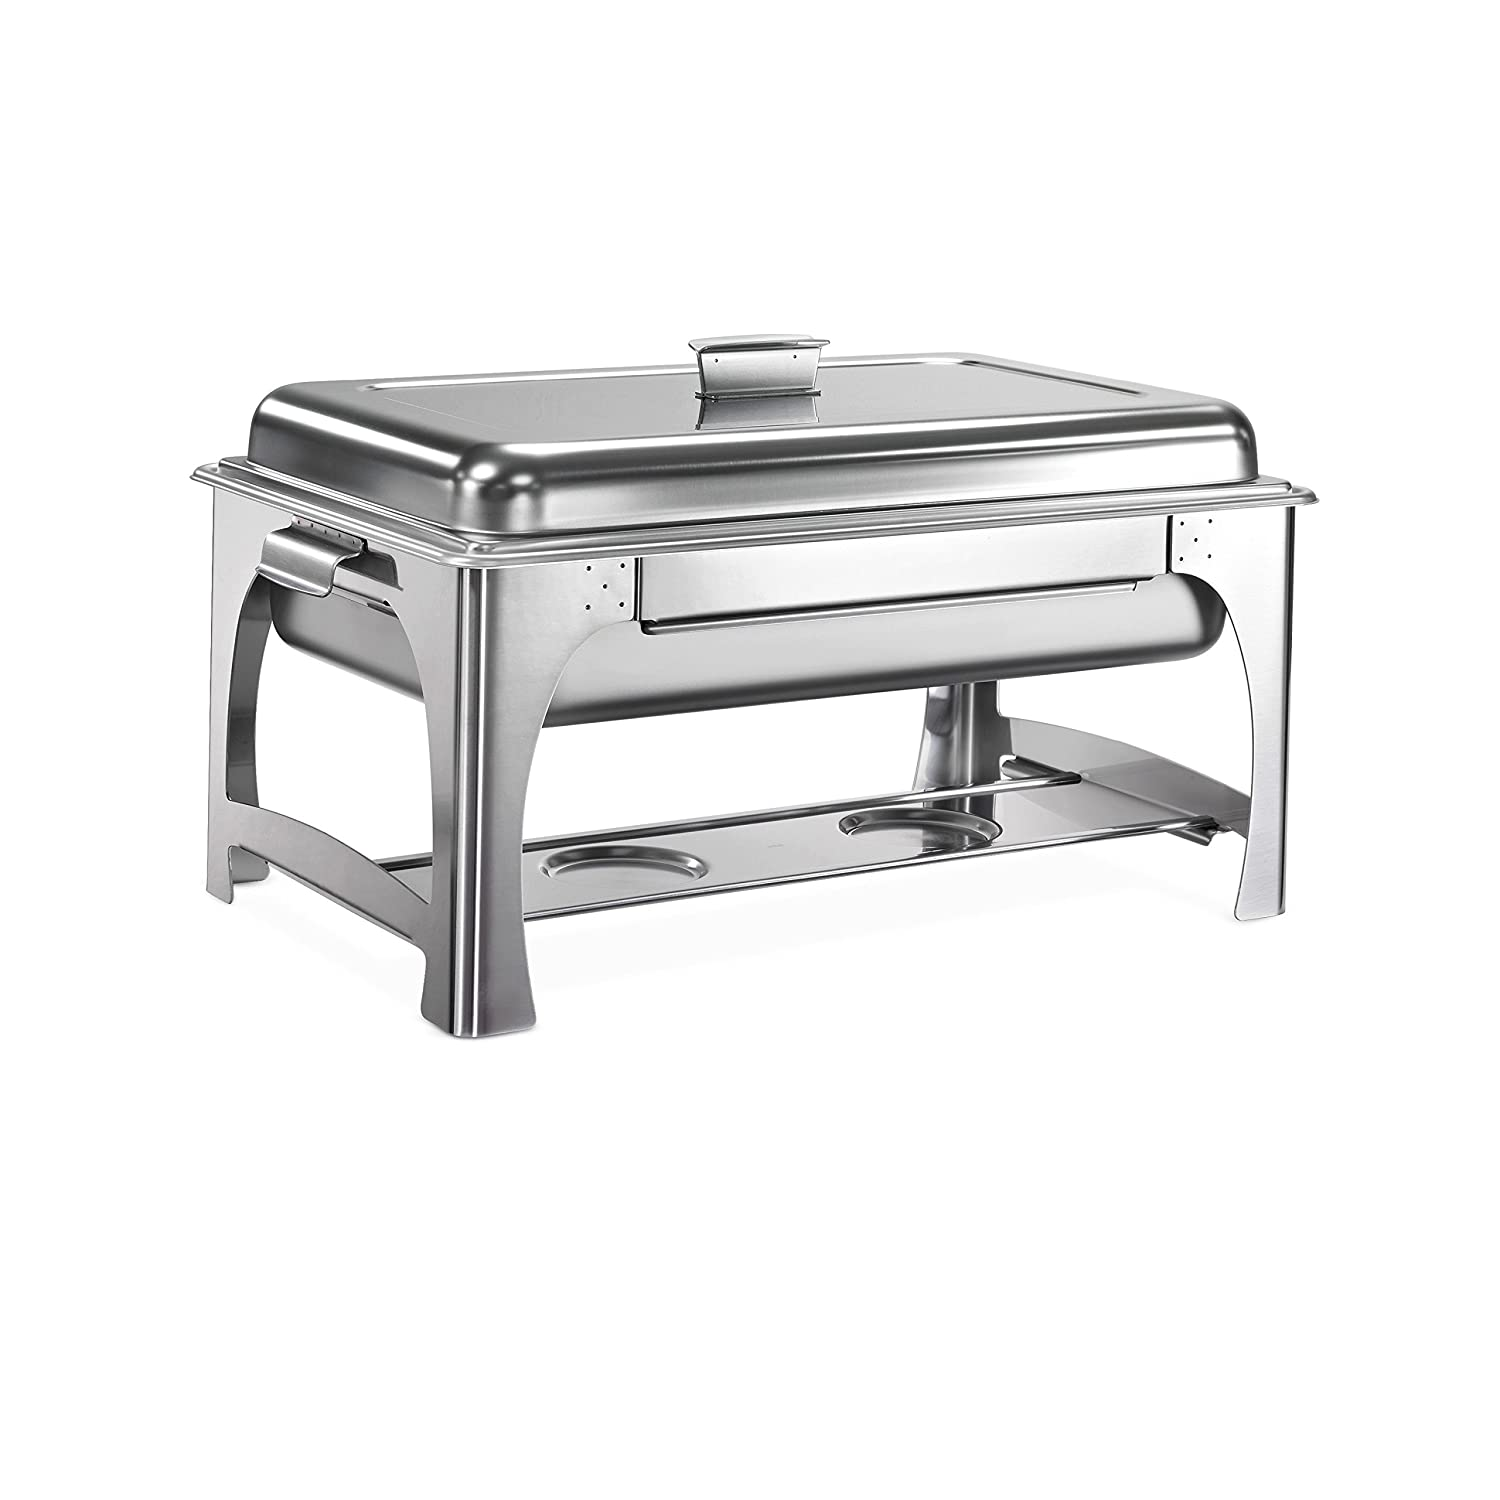 Tramontina 80120/520DS Pro-Line Stainless Steel Chafing Dish, 9-Quart, NSF-Certified 80205/520DS